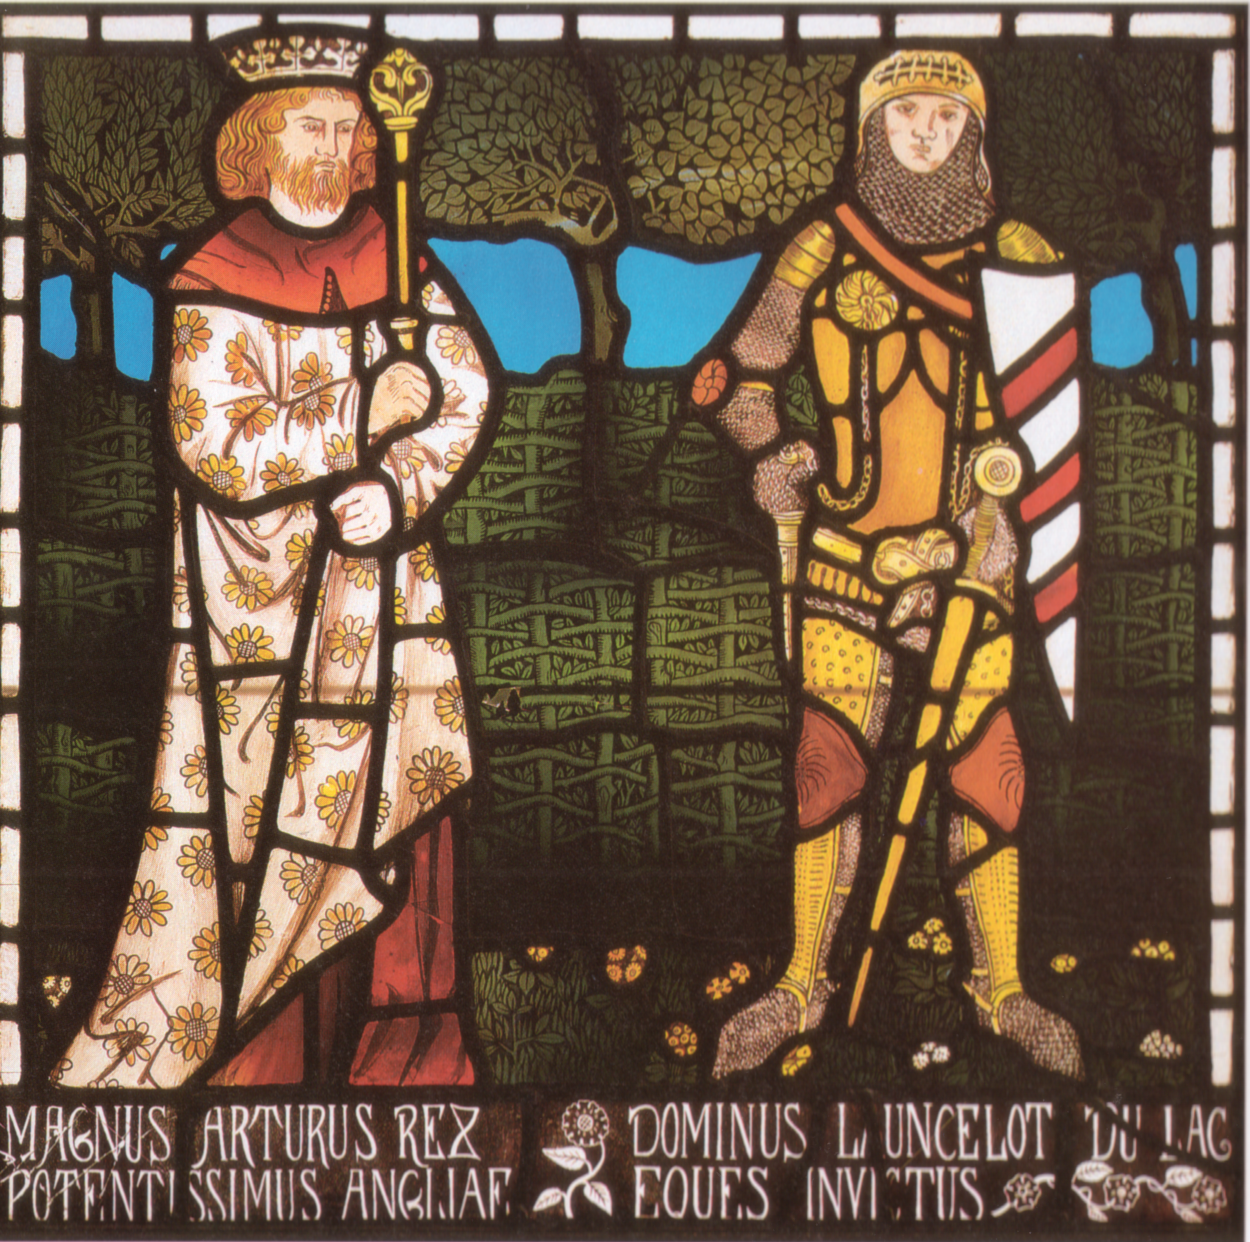 William Morris, King Arthur et sir Lancelot, détail des vitraux de Tristan et Yseult, 1862. Bradford Art Gallery